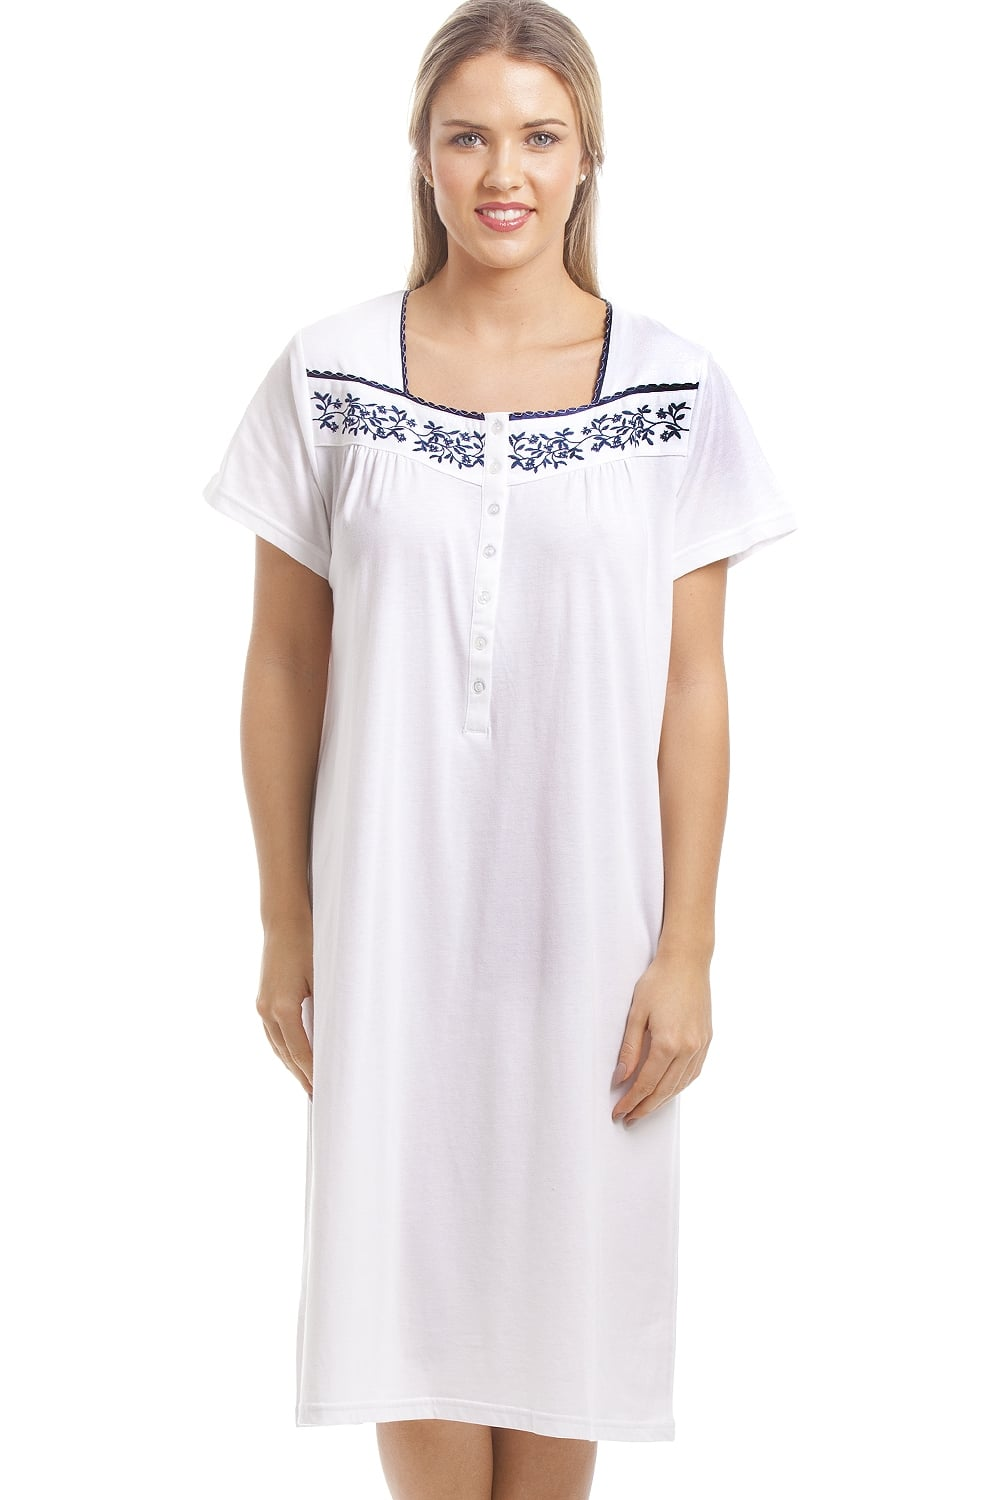 Camille Classic White Nightdress With Navy Floral Design 7bc2717cc